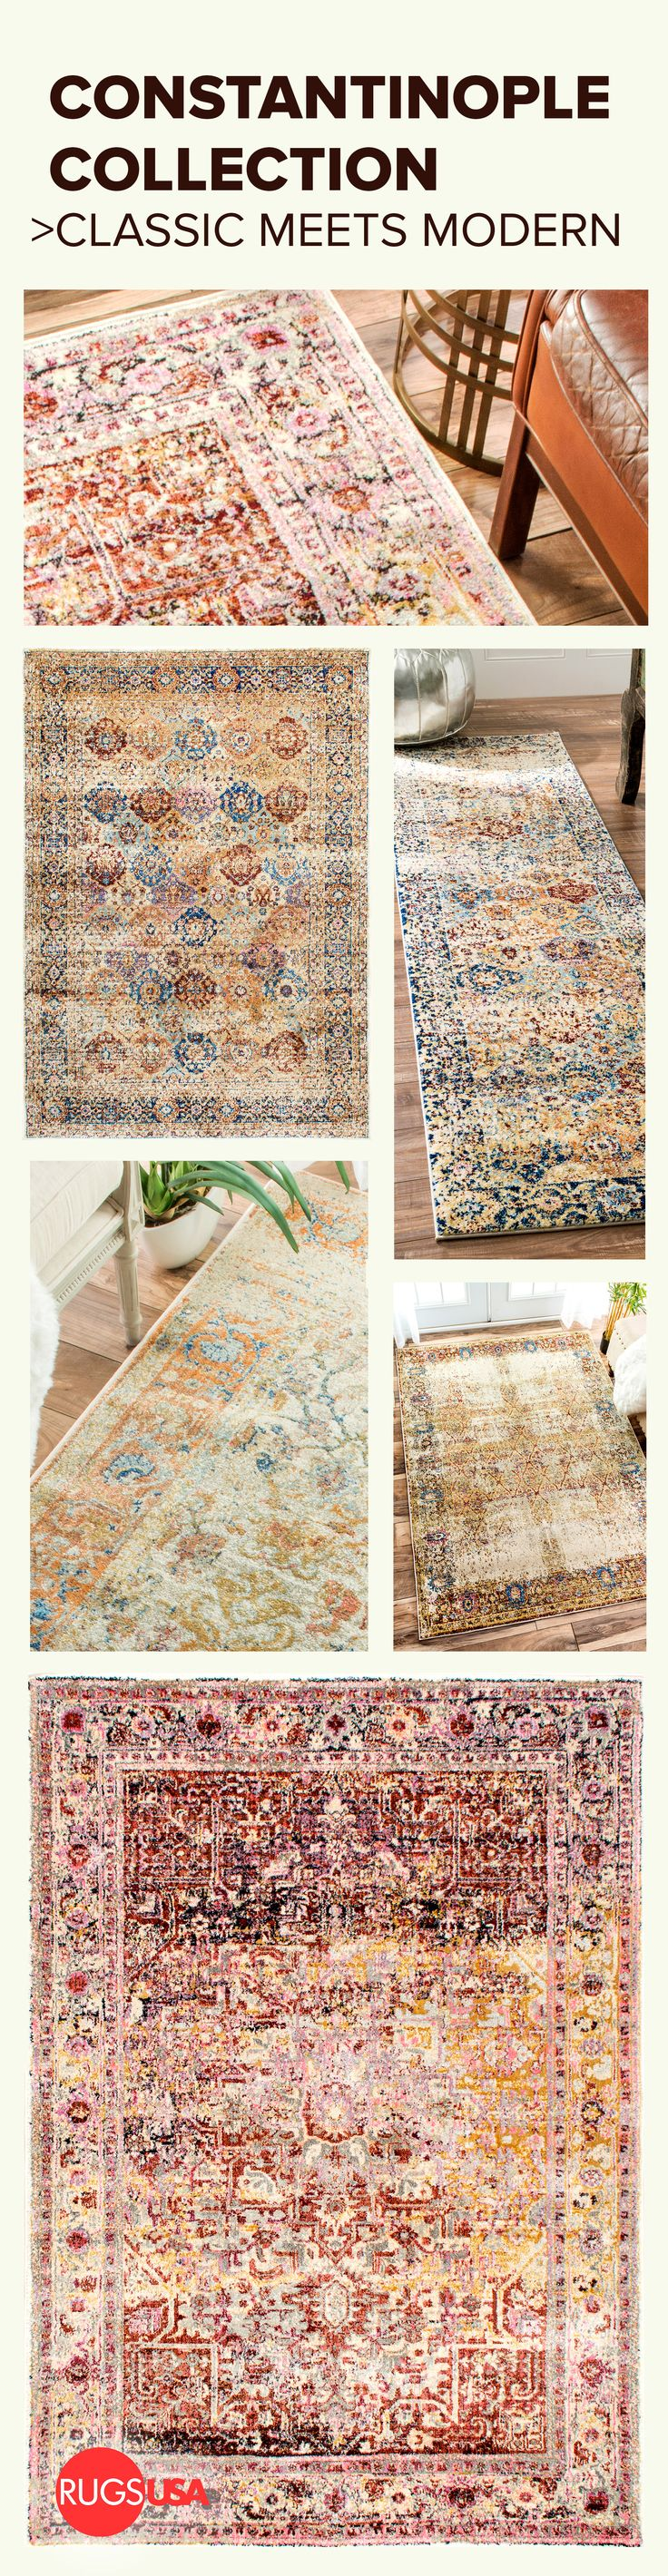 150 best vintage images on pinterest | rugs usa, vintage rugs and